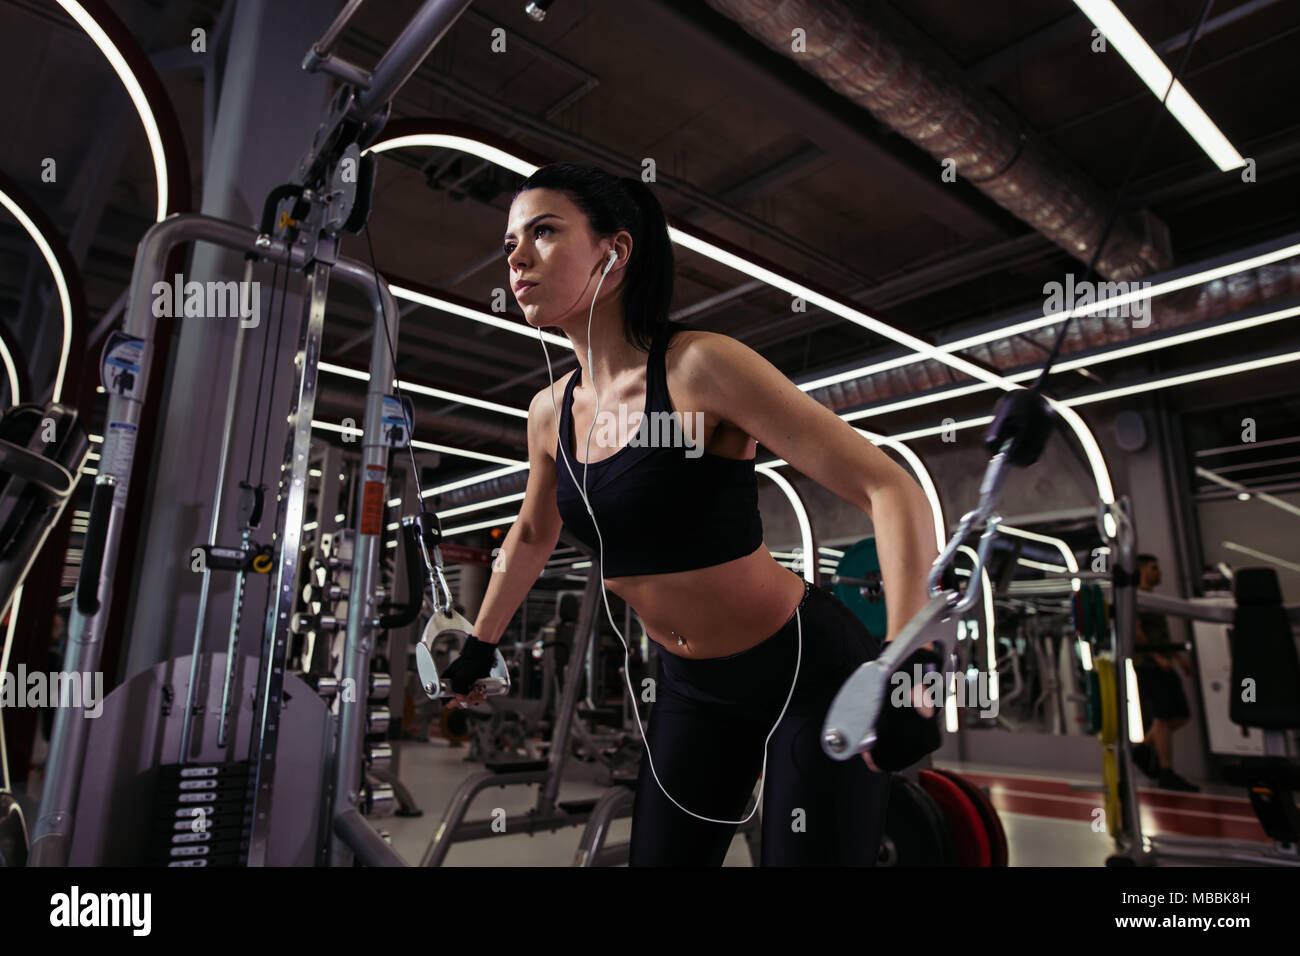 Fit woman exécuter l'exercice avec l'exercice-machine Cable Crossover in gym Photo Stock